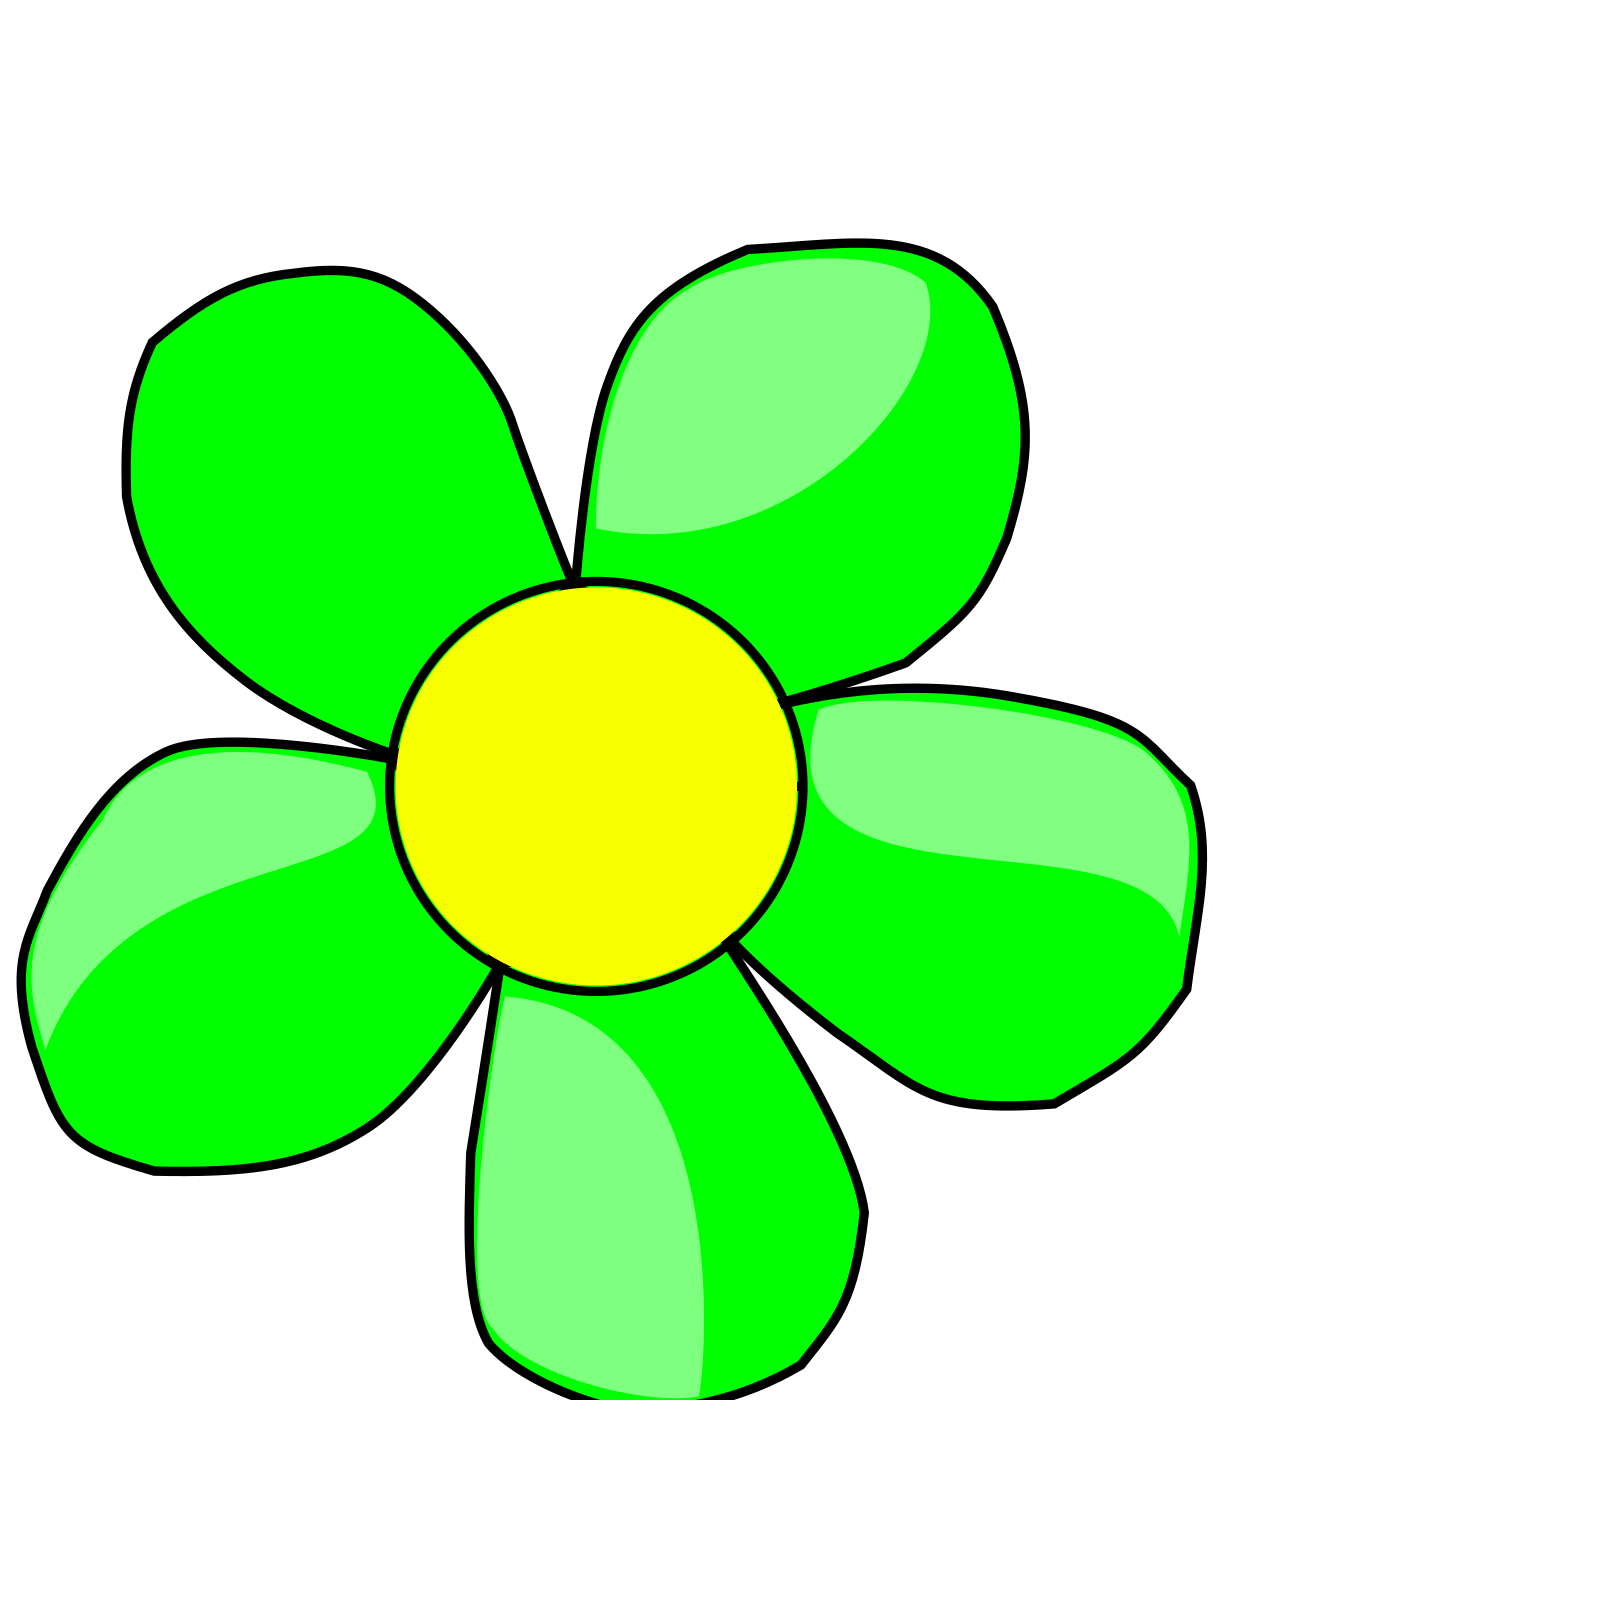 Flower green. Funny clip art icon